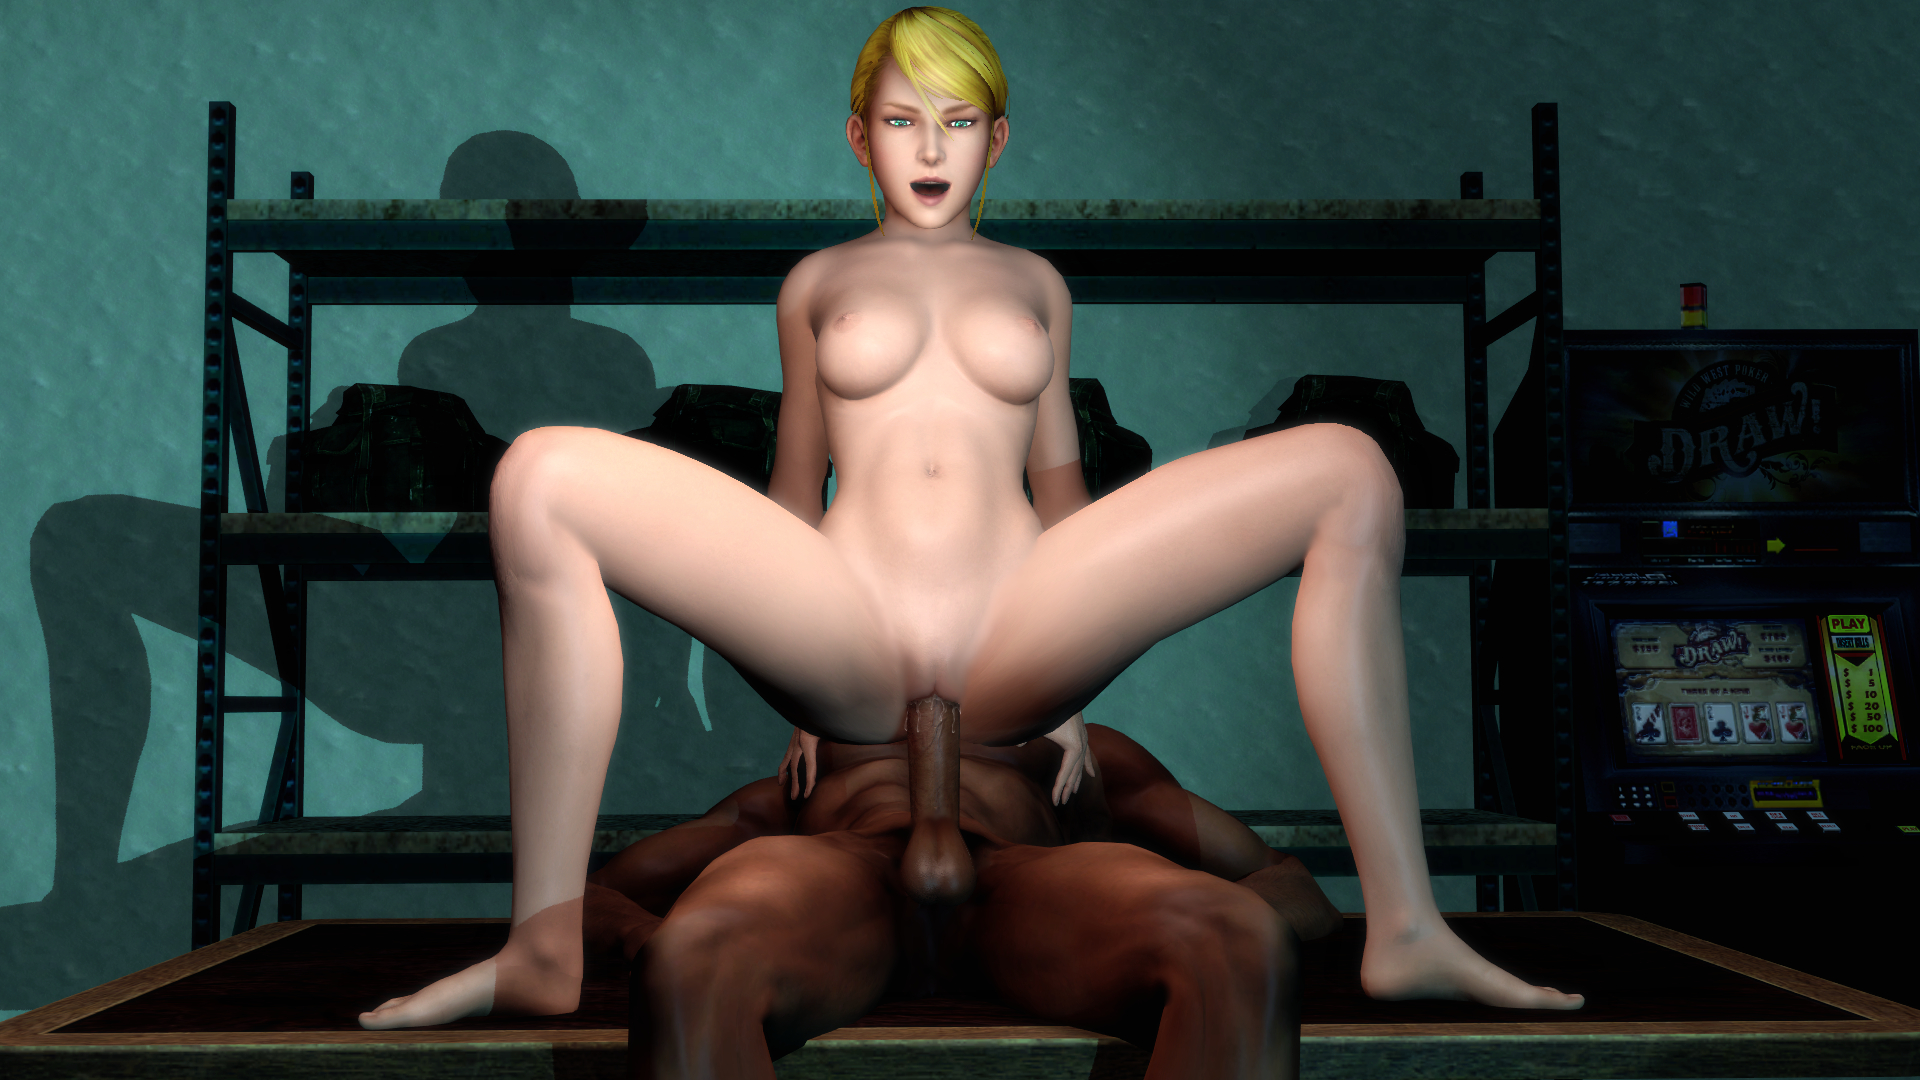 Porn gmod model nude pictures